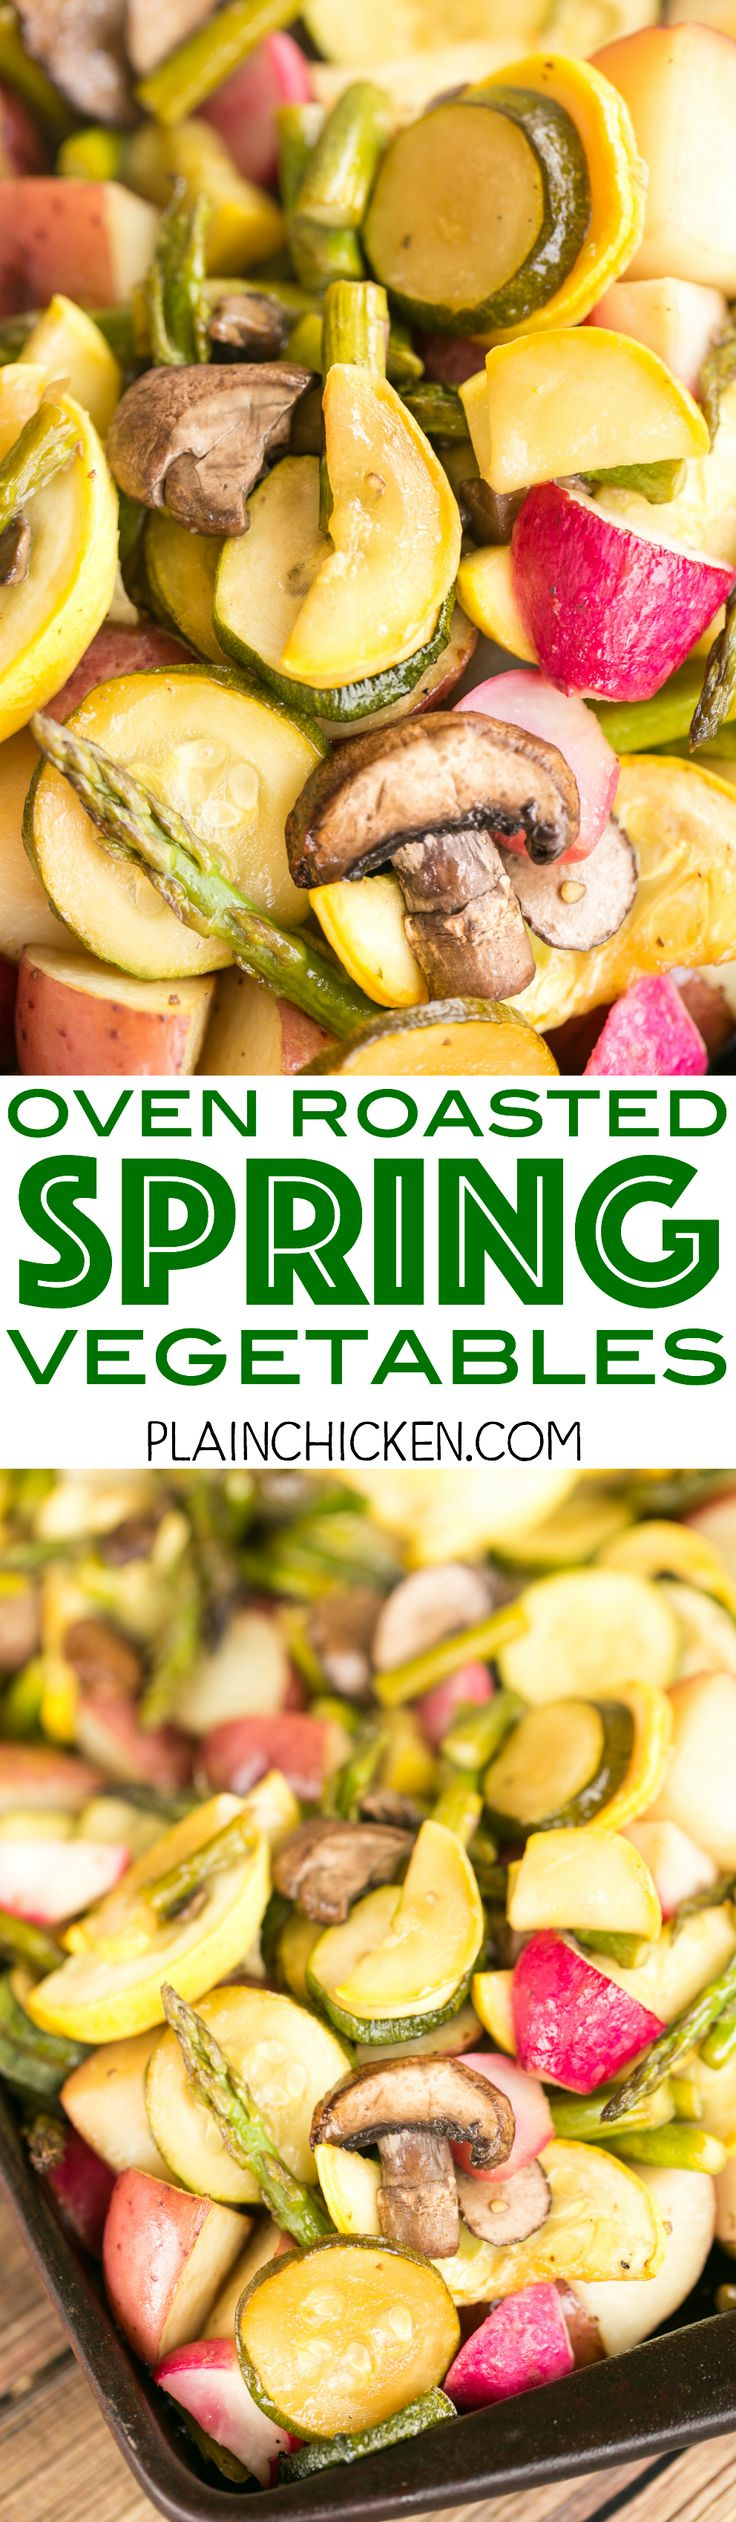 Oven Roasted Spring Vegetables - potatoes, asparagus, squash, zucchini, radishes and mushrooms tossed in balsamic vinegar and brown sugar. Something for everyone!! Such and EASY side dish recipe! Just chop, toss and bake. Ready in about 35 minutes. Everyone LOVES this dish! Great with grilled chicken, pork and steak.